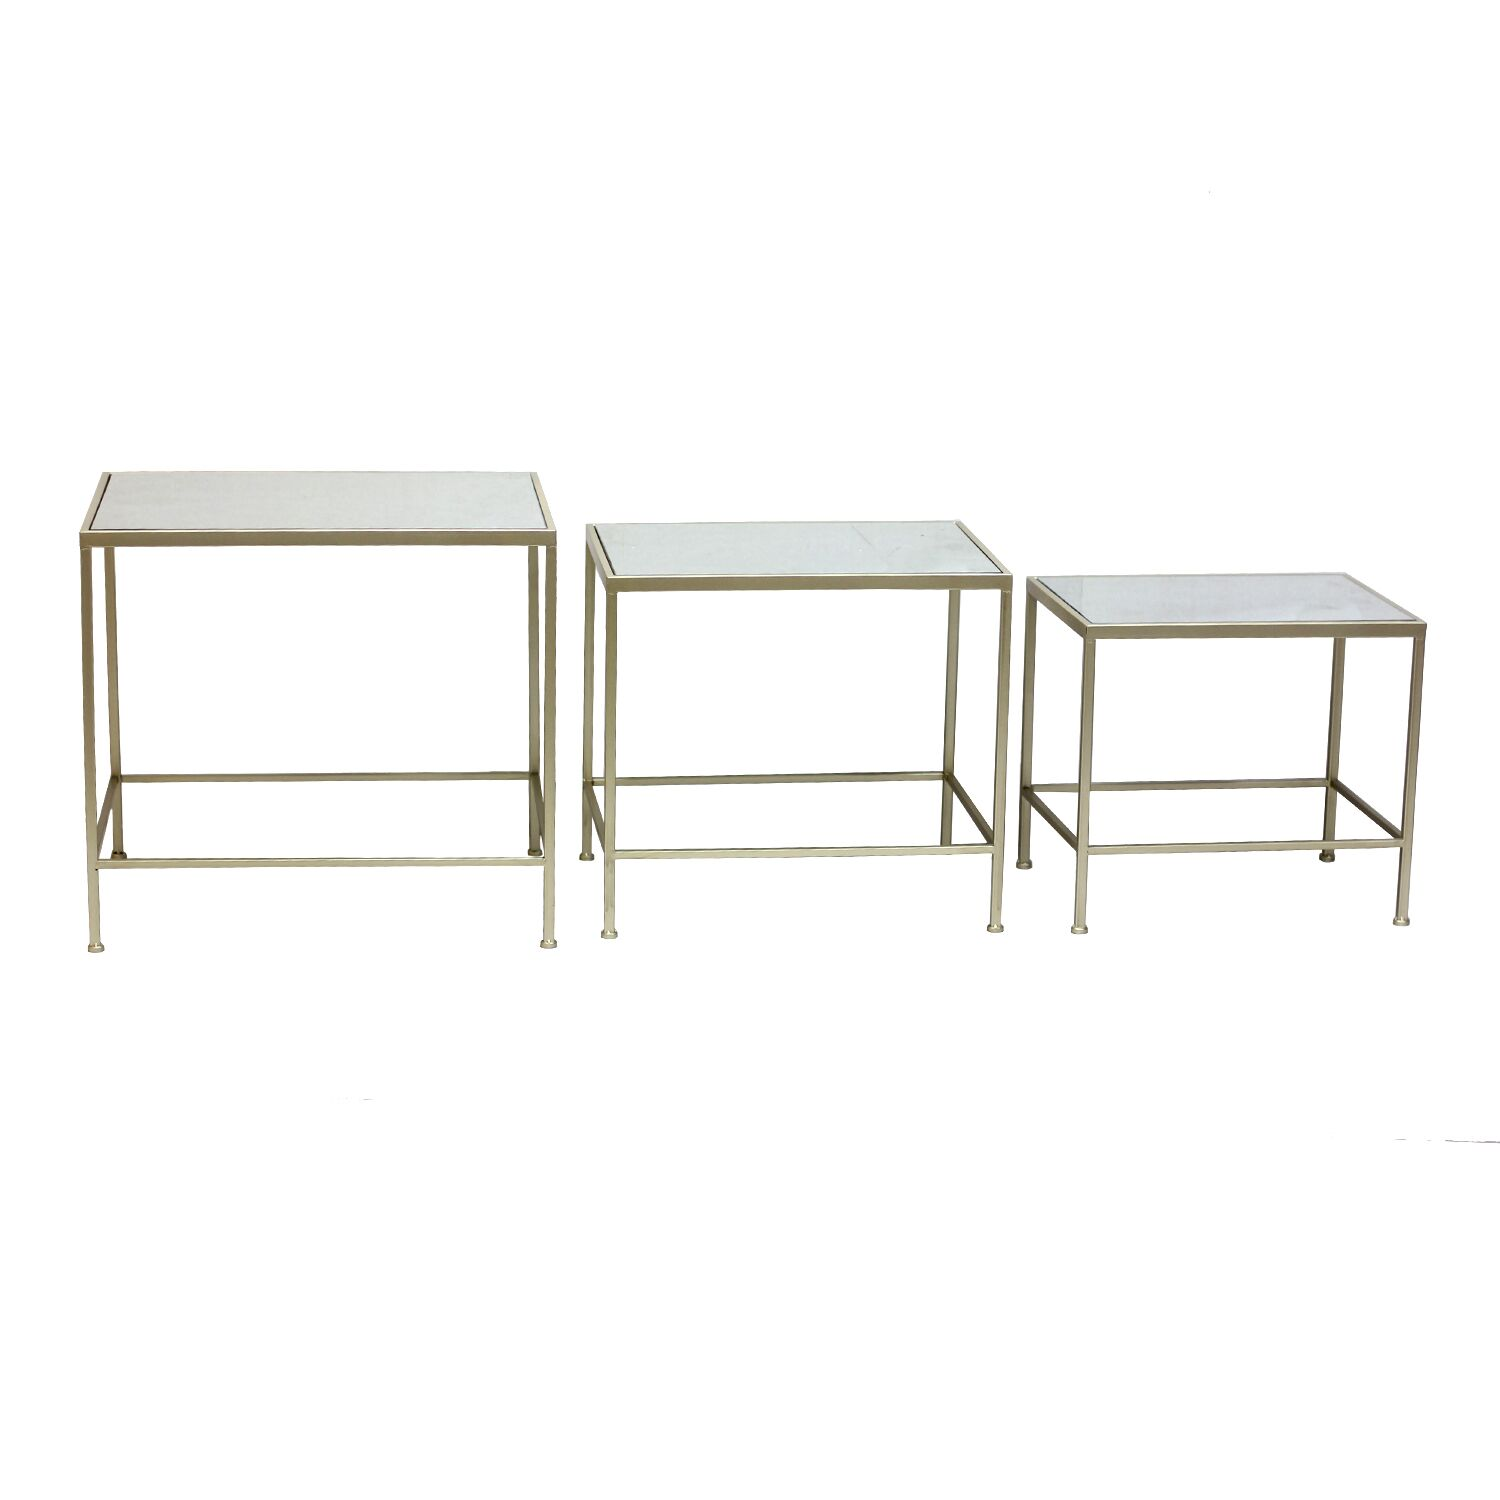 Witherspoon 3 Piece Nesting Tables Table Base Color: Champagne